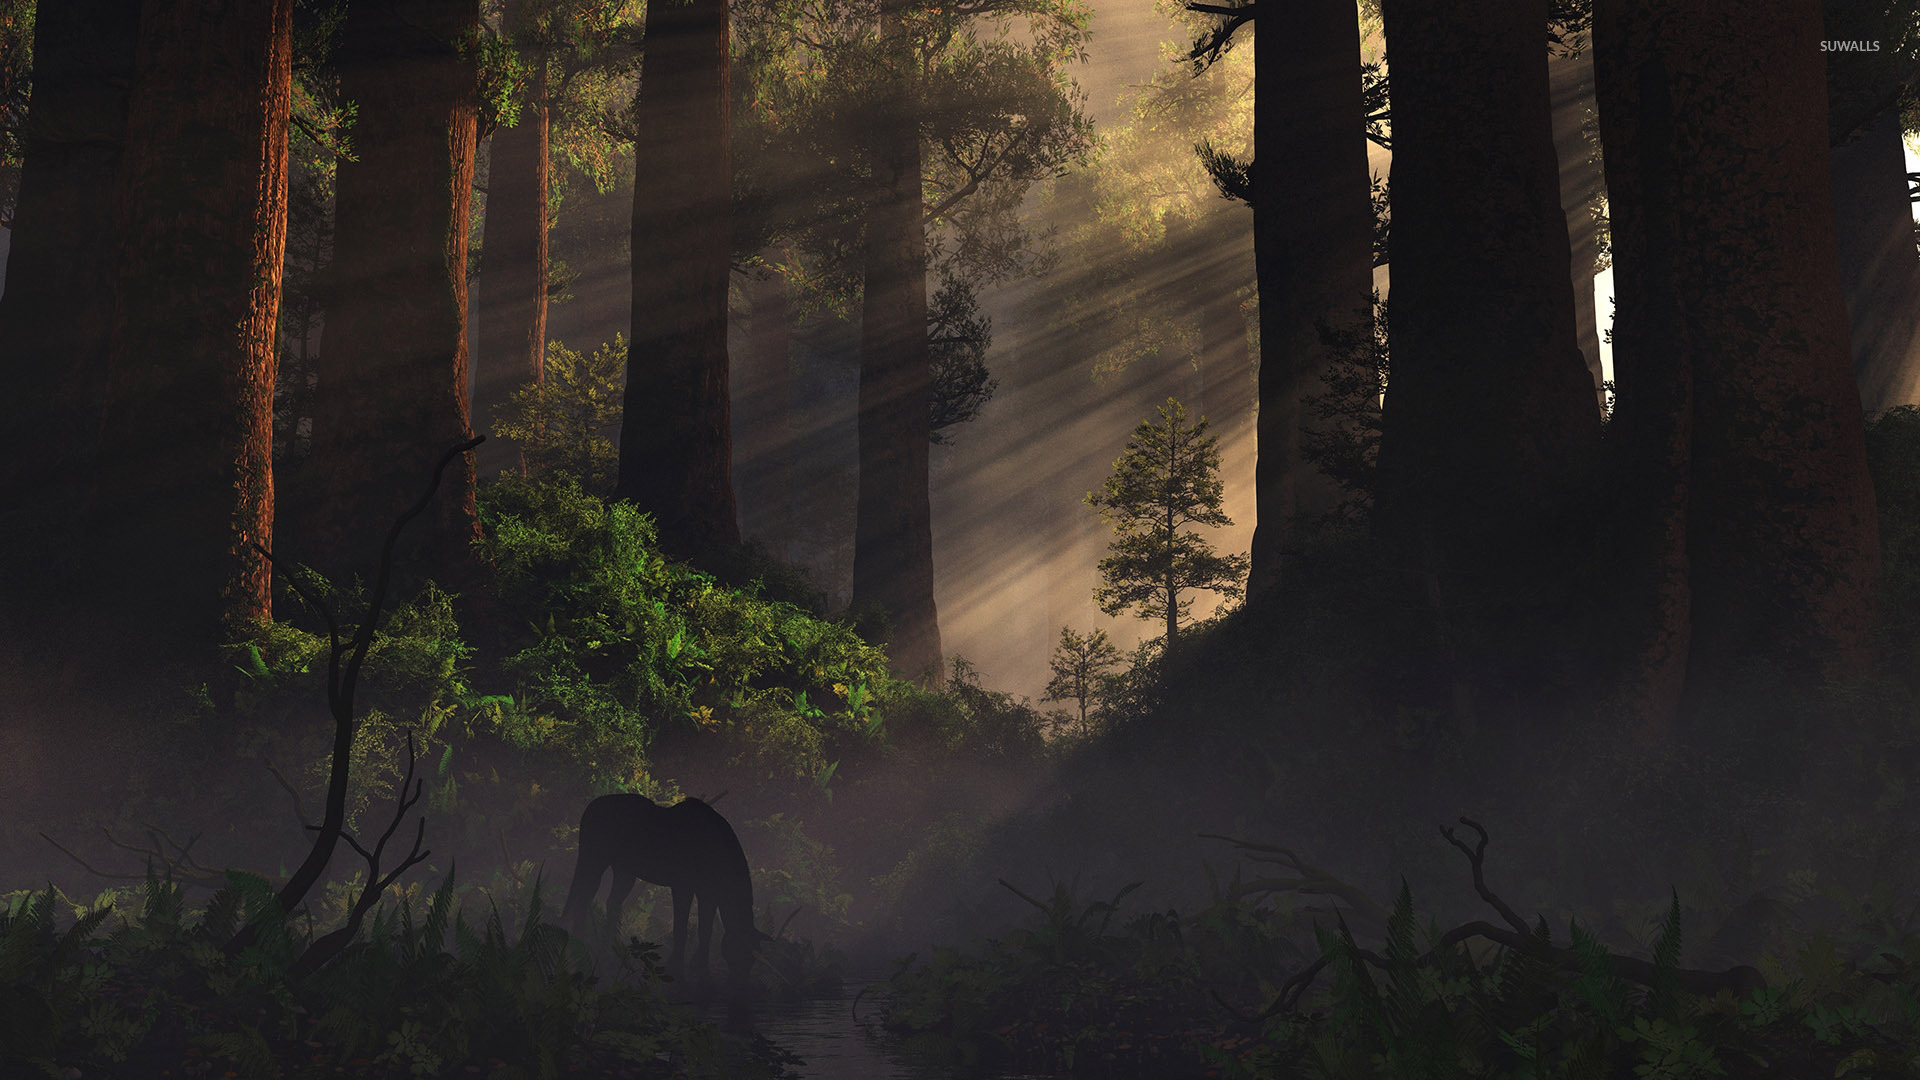 The Rock Quotes Wallpaper Hd Free Download Horse In The Forest Wallpaper Digital Art Wallpapers